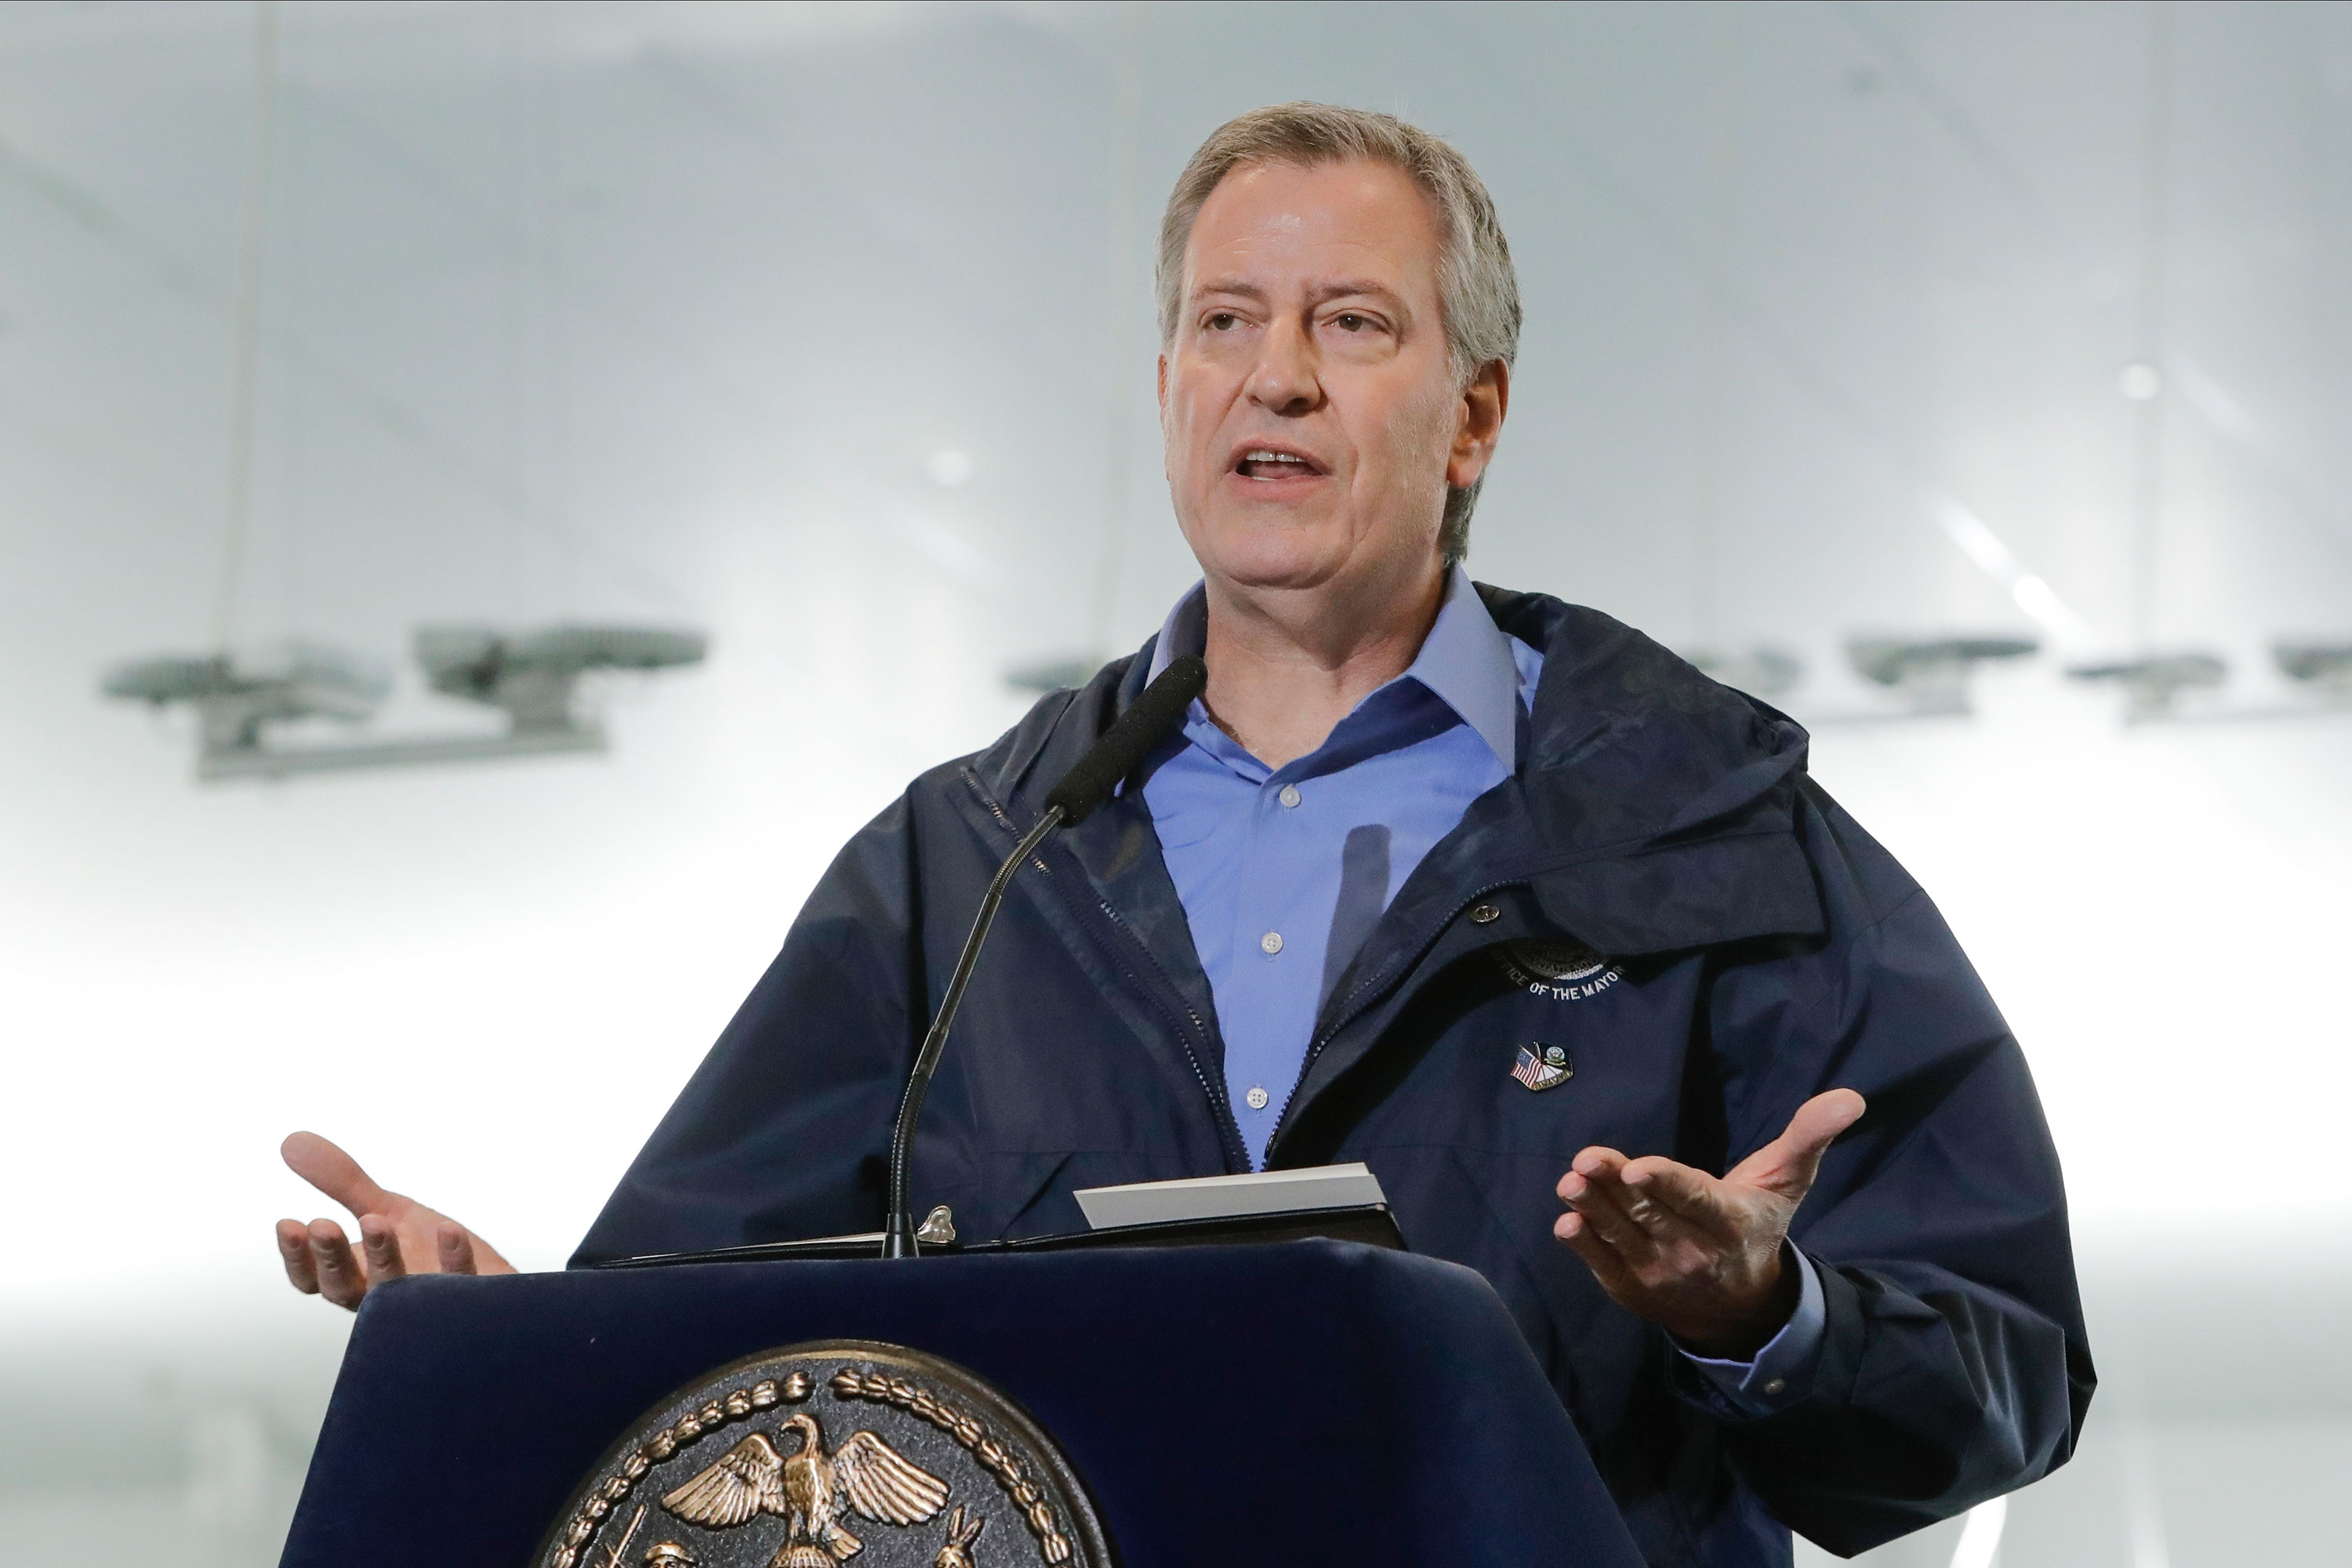 New York City Mayor Bill de Blasio speaks at a news conference on March 31, in New York.